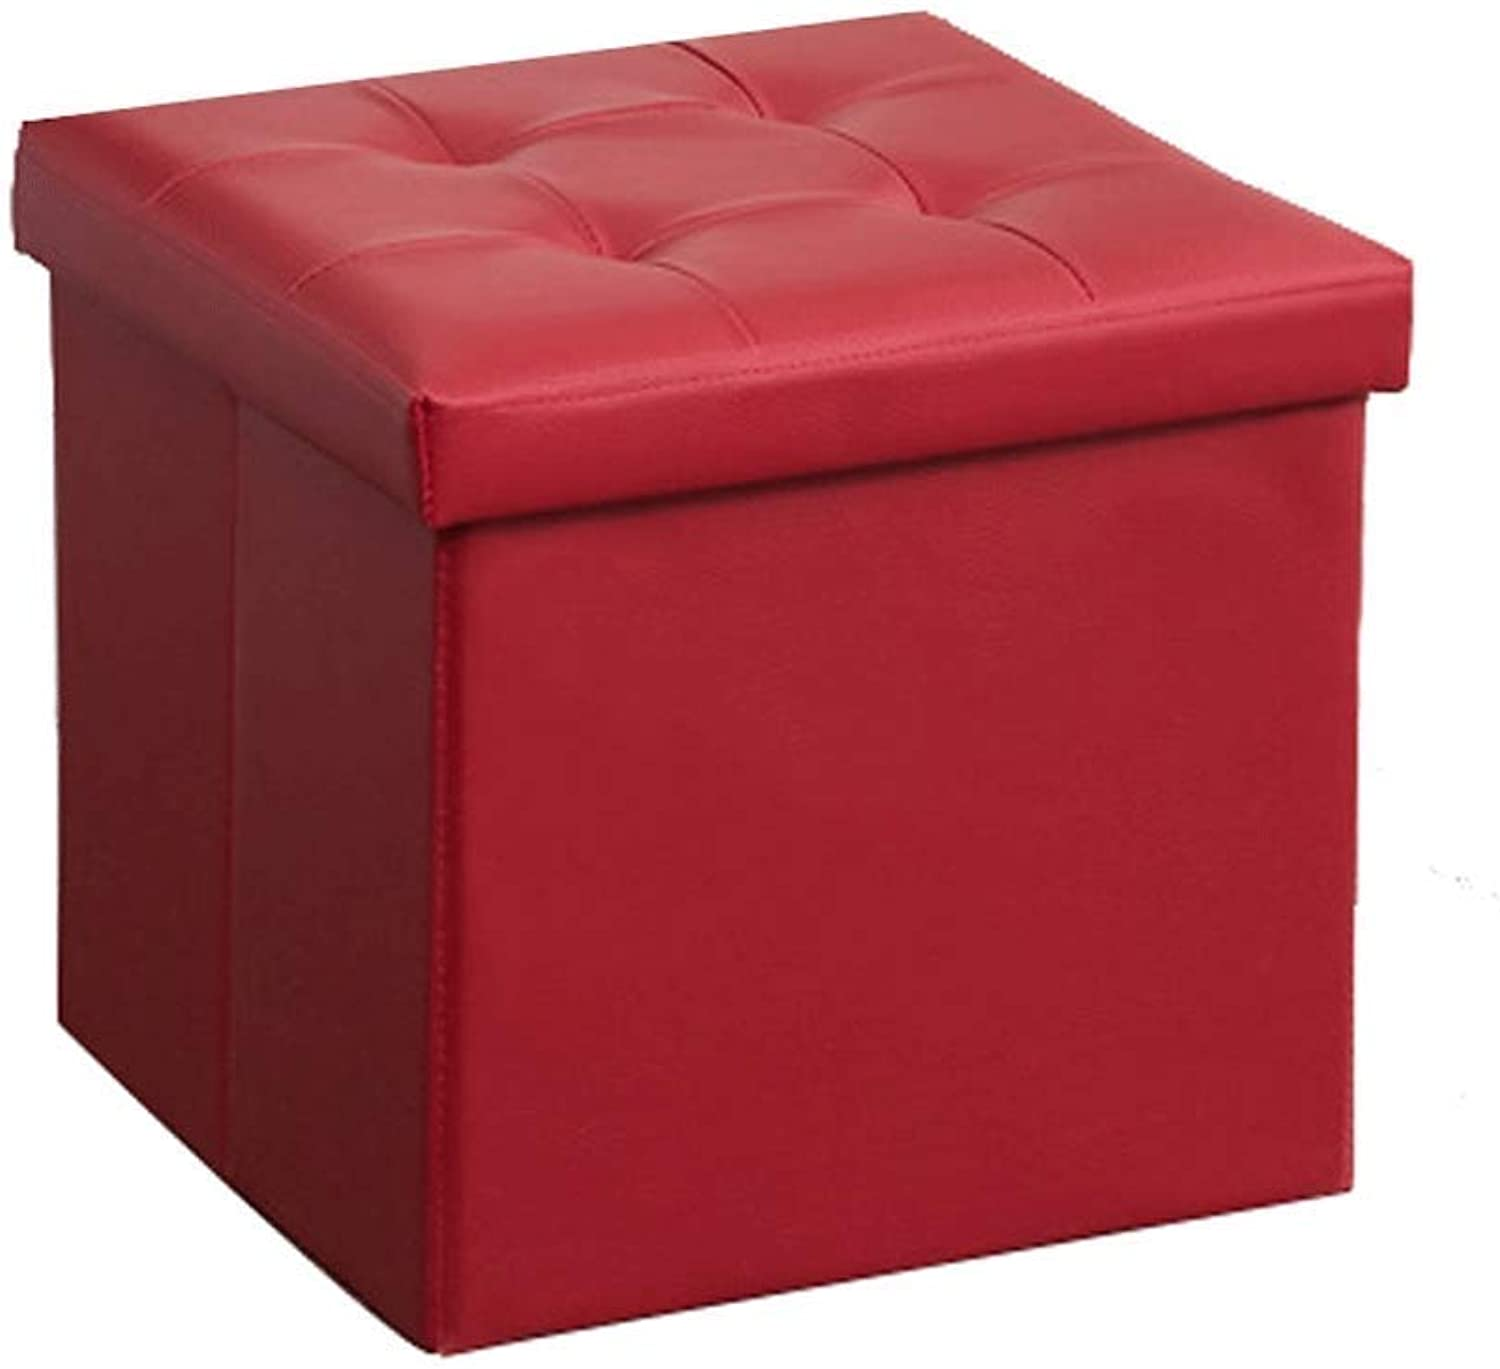 Storage Stool Footstool PU Leather Clothing Large Capacity Storage Foldable Design Fine Workmanship 38X38X38CM Storage Box Haiming (color   Red, Size   38X38X38CM)